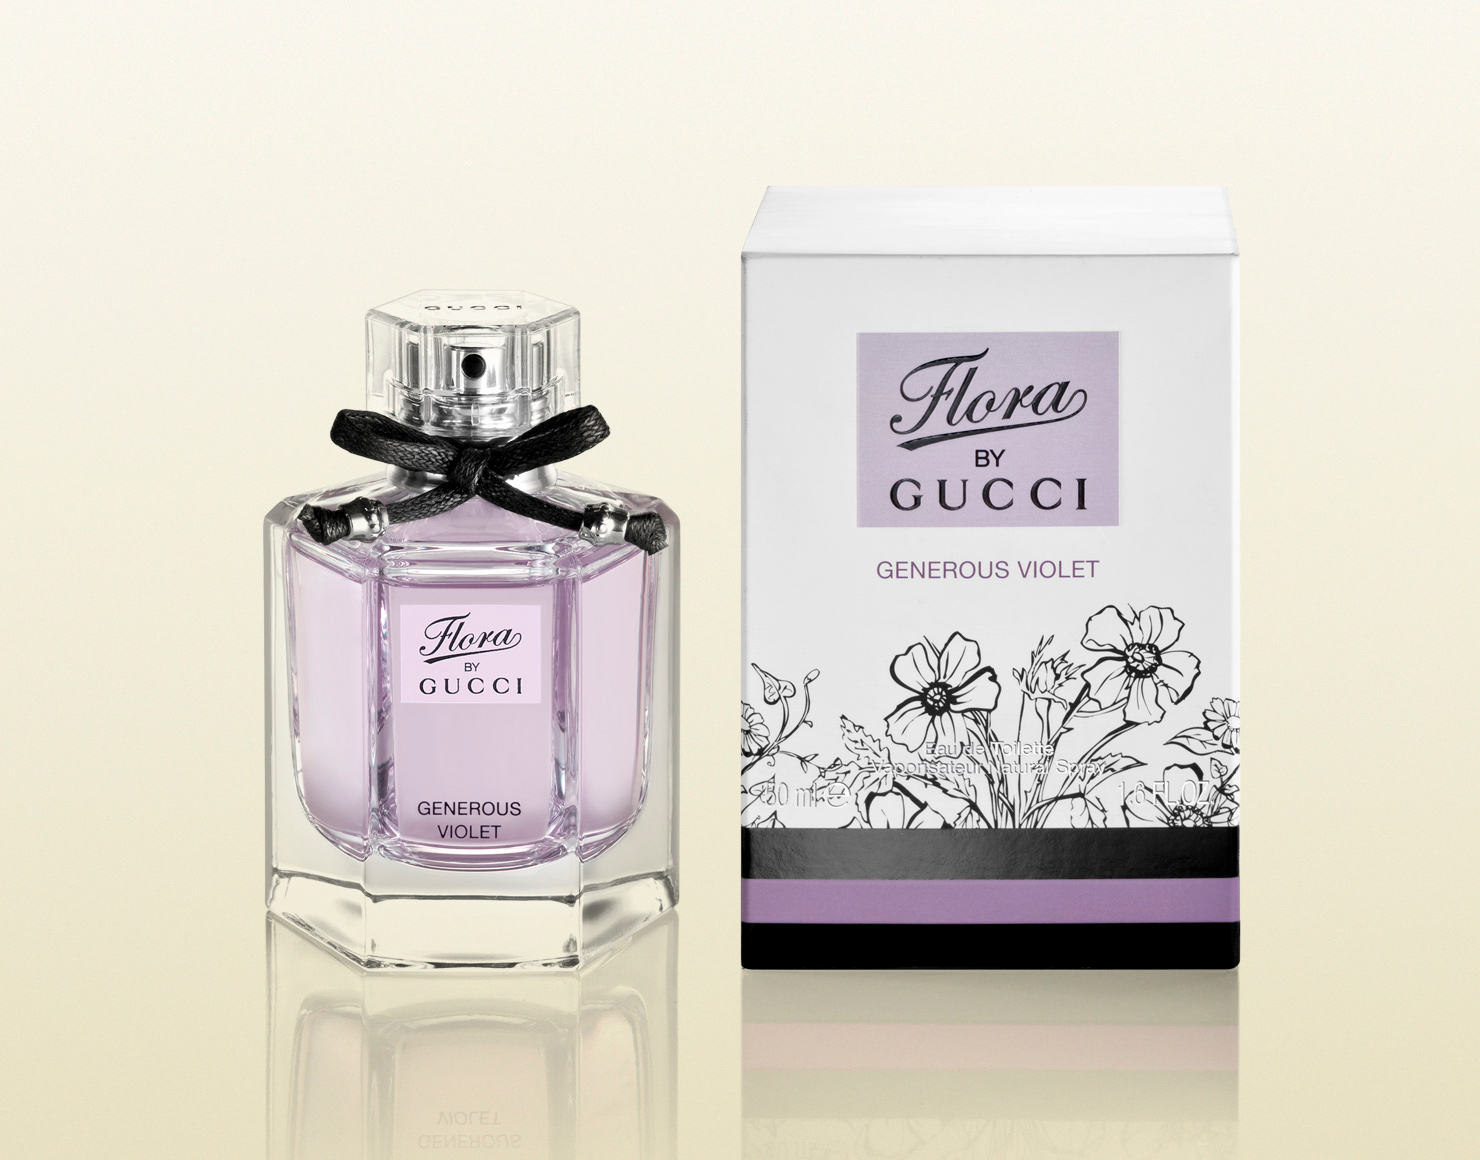 5417f549b24 Flora by Gucci Generous Violet Gucci perfume - a fragrance for women ...